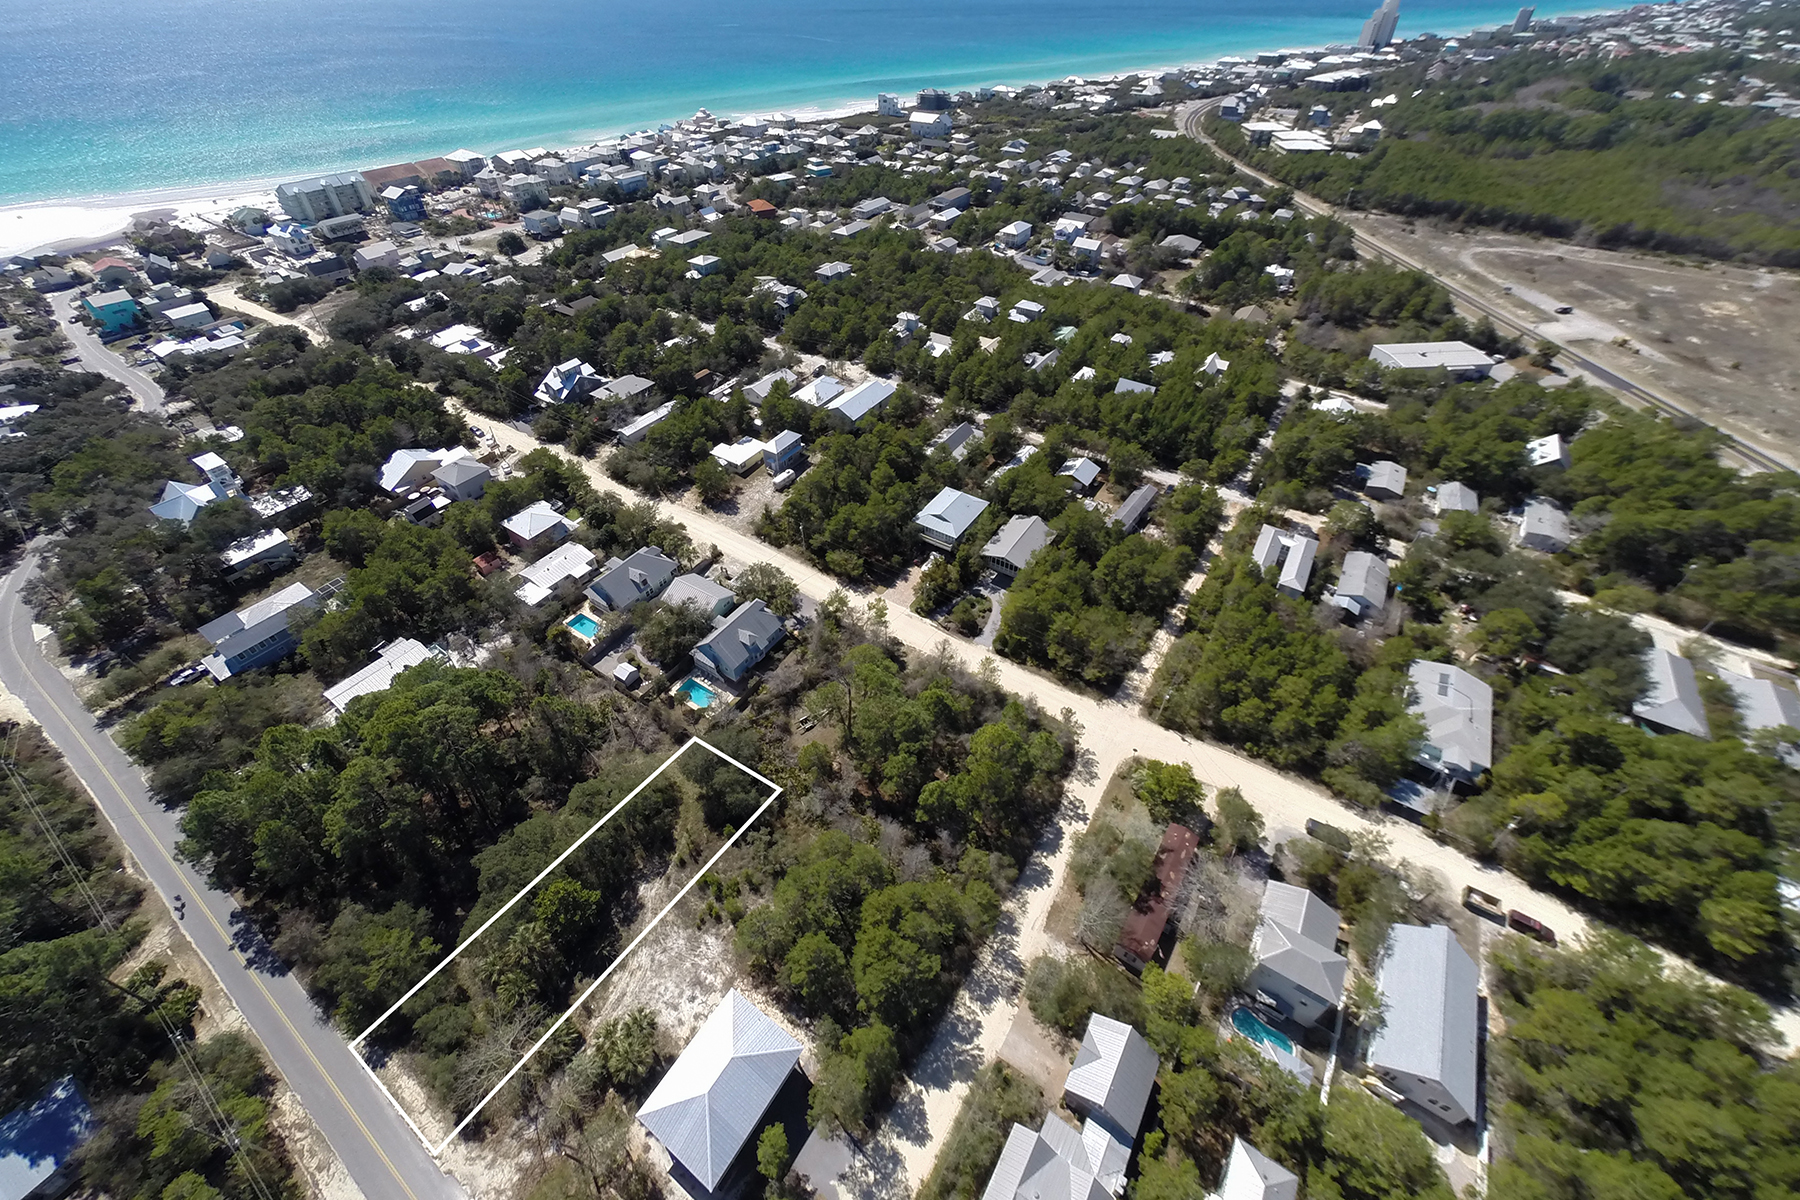 Land for Sale at TWO LOTS OFF EASTERN LAKE SOUTH OF 30A Lot 3 Gulf South Drive Santa Rosa Beach, Florida, 32459 United States